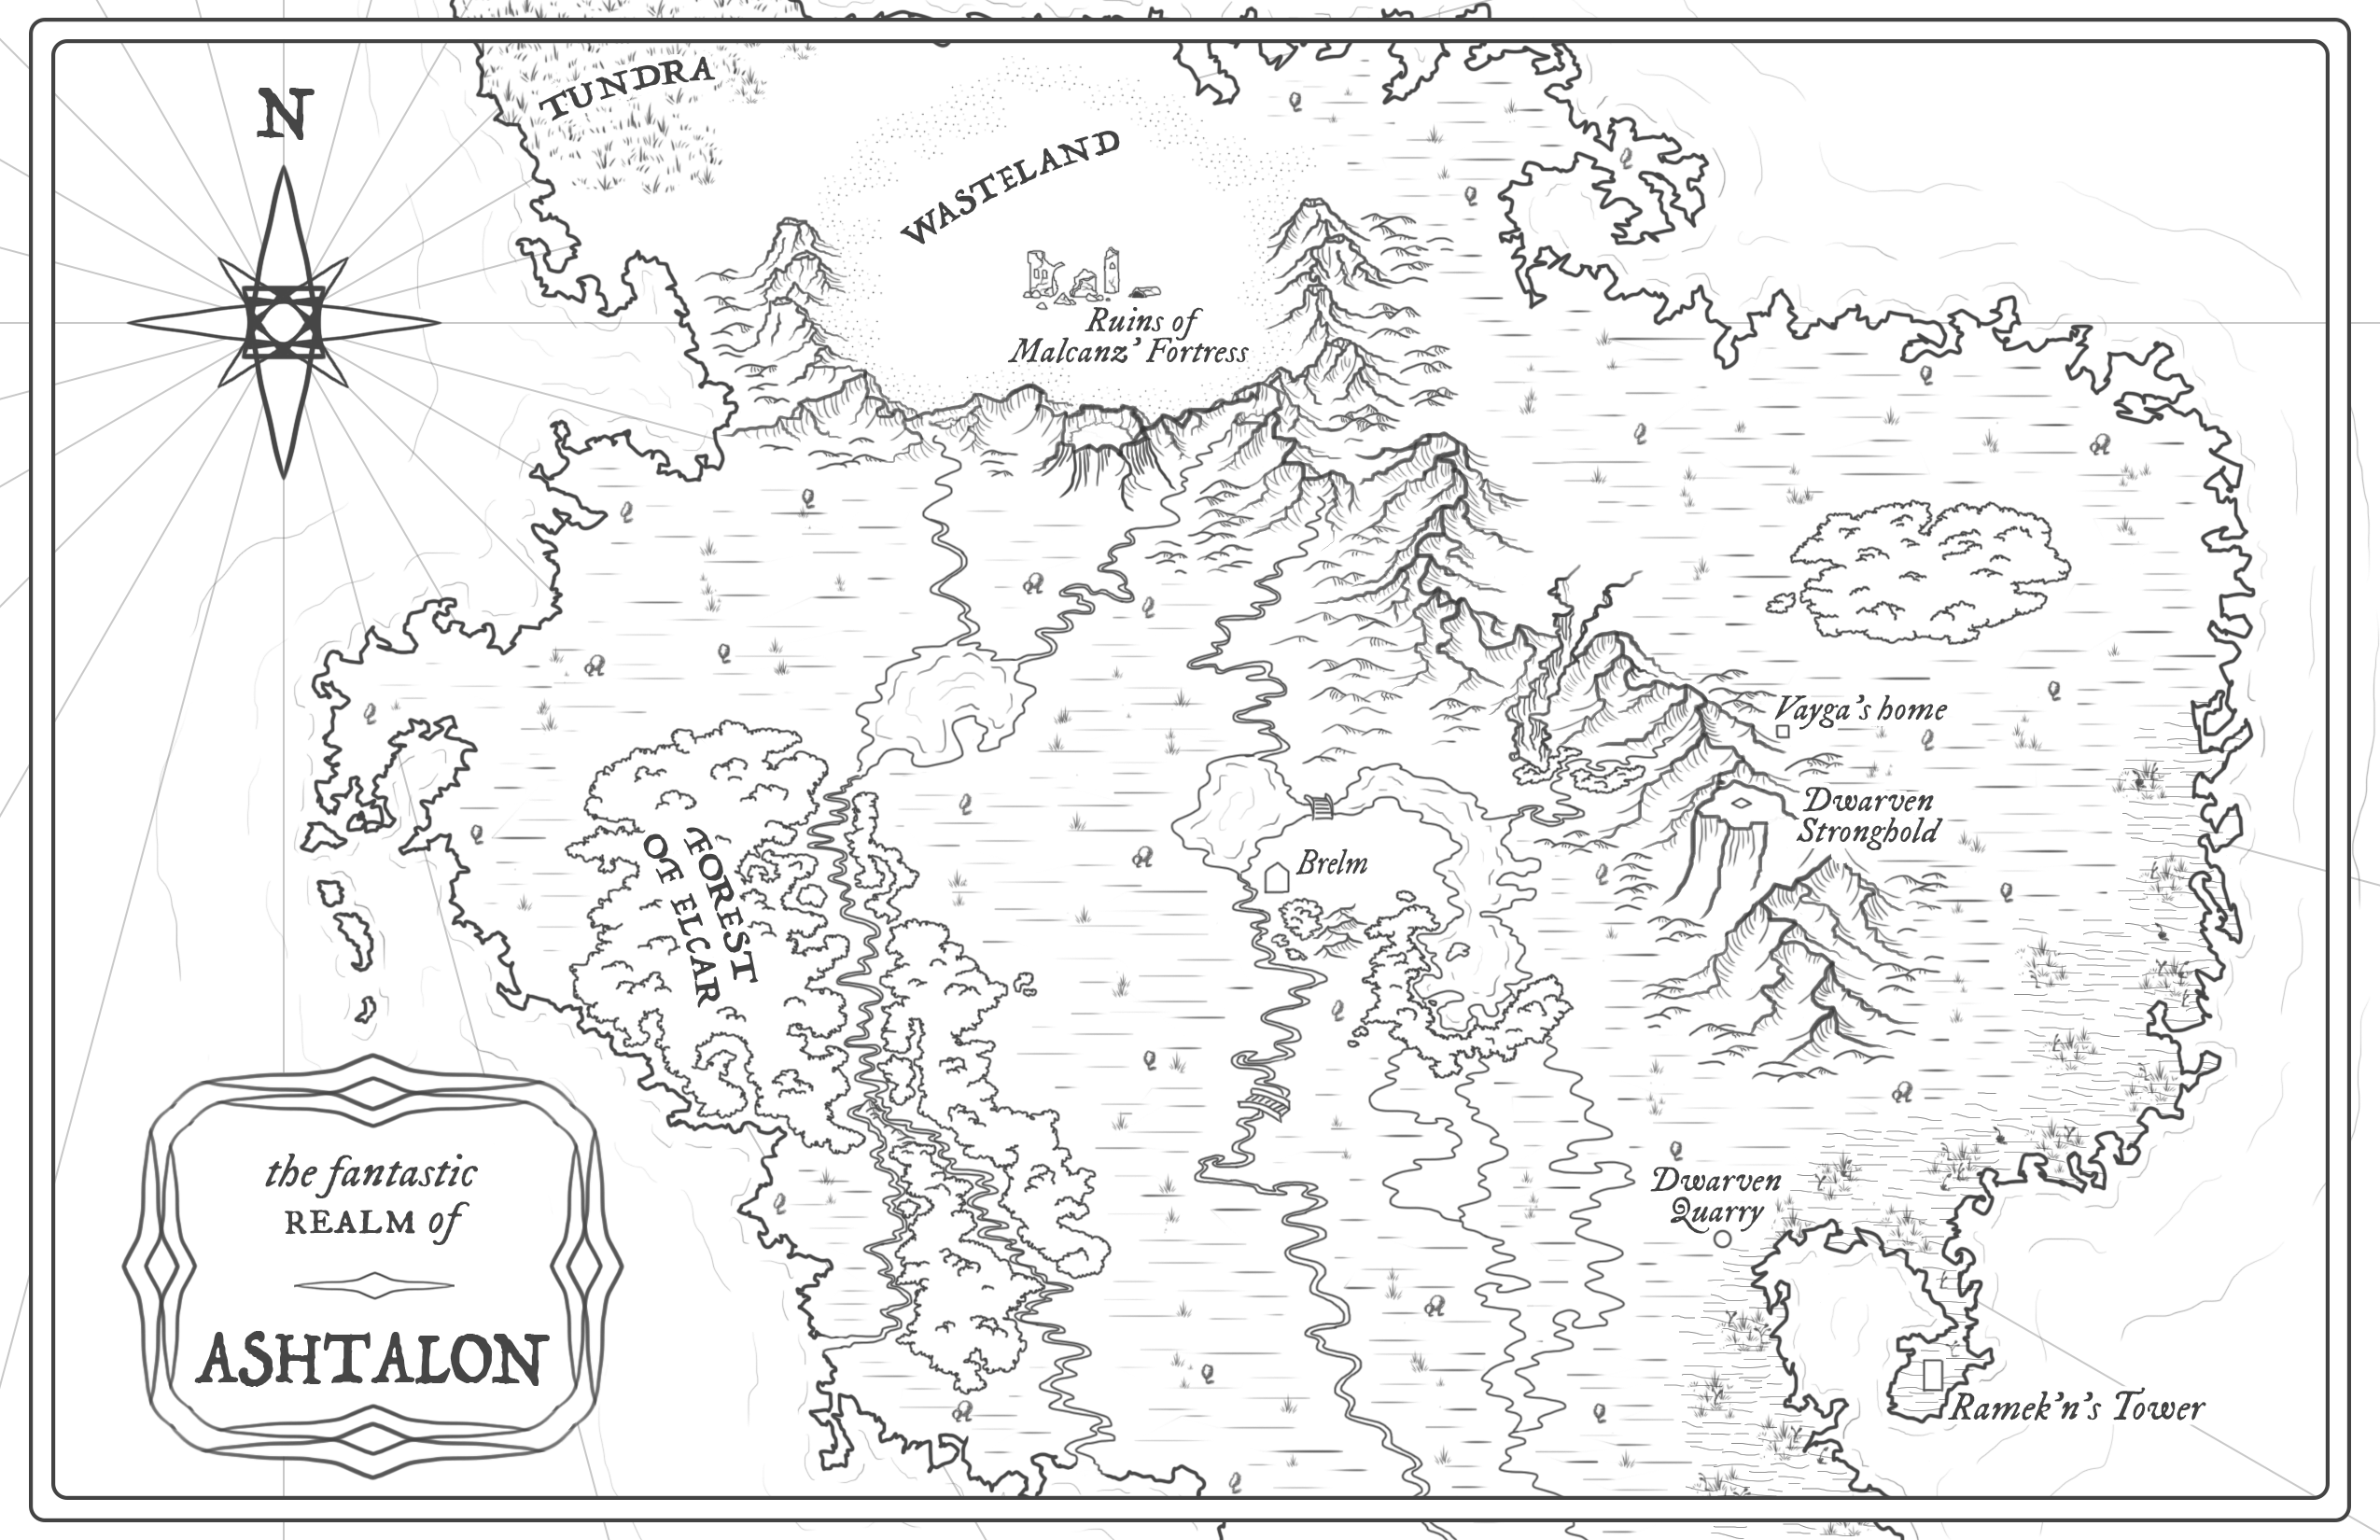 Ashtalon B&W map final